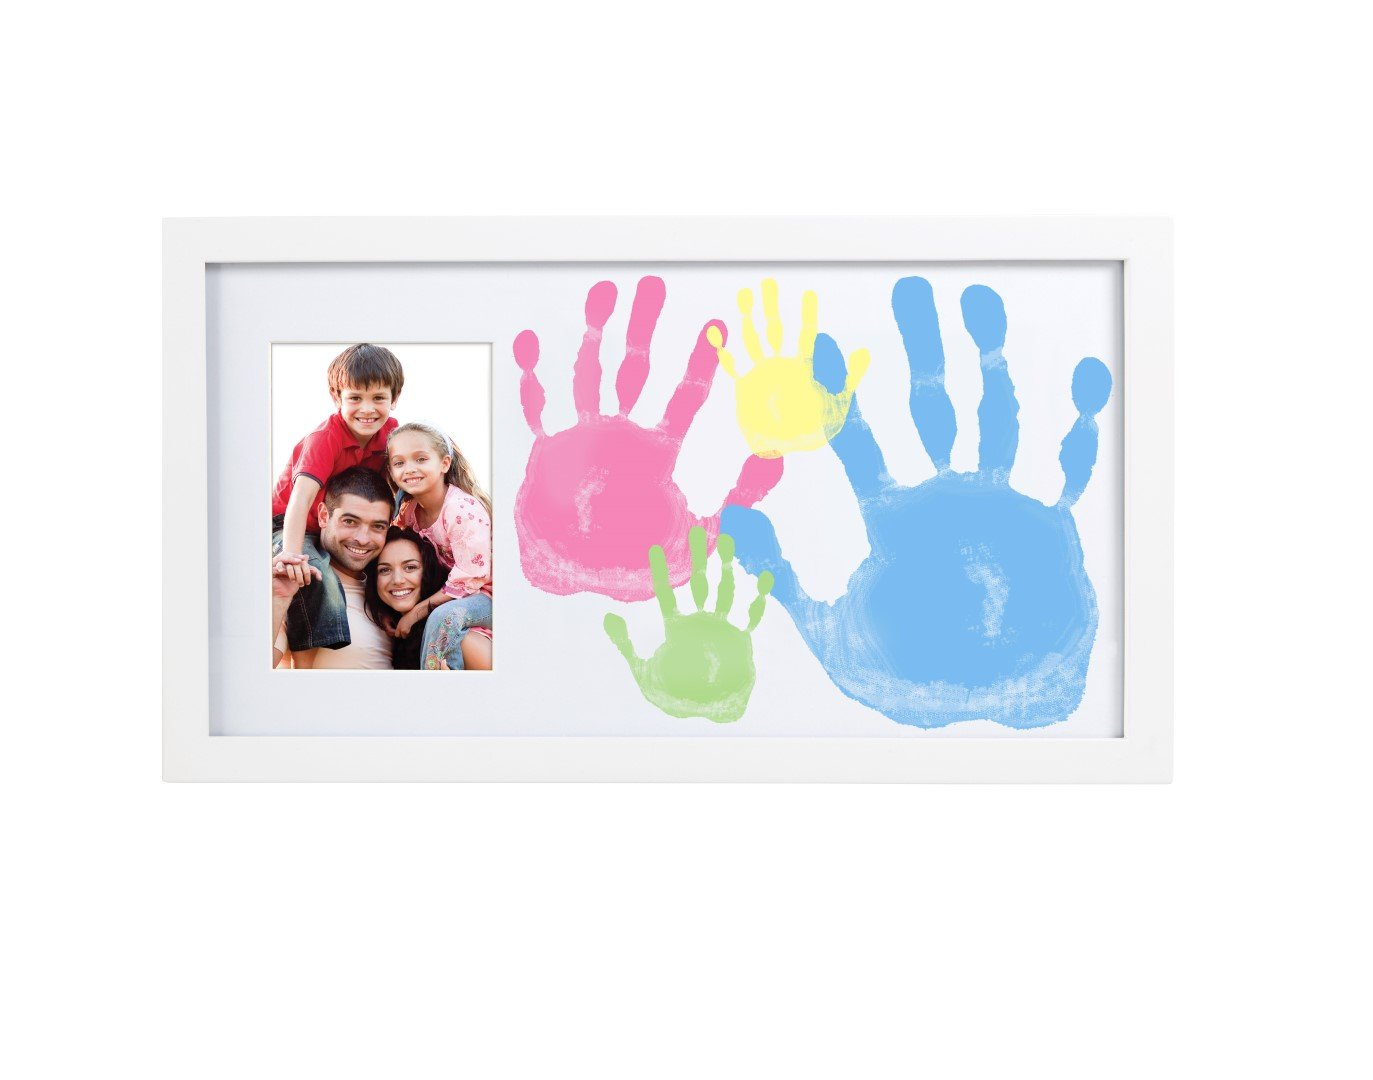 Pearhead DIY Family Handprint and Photo Keepsake Frame Kit, White